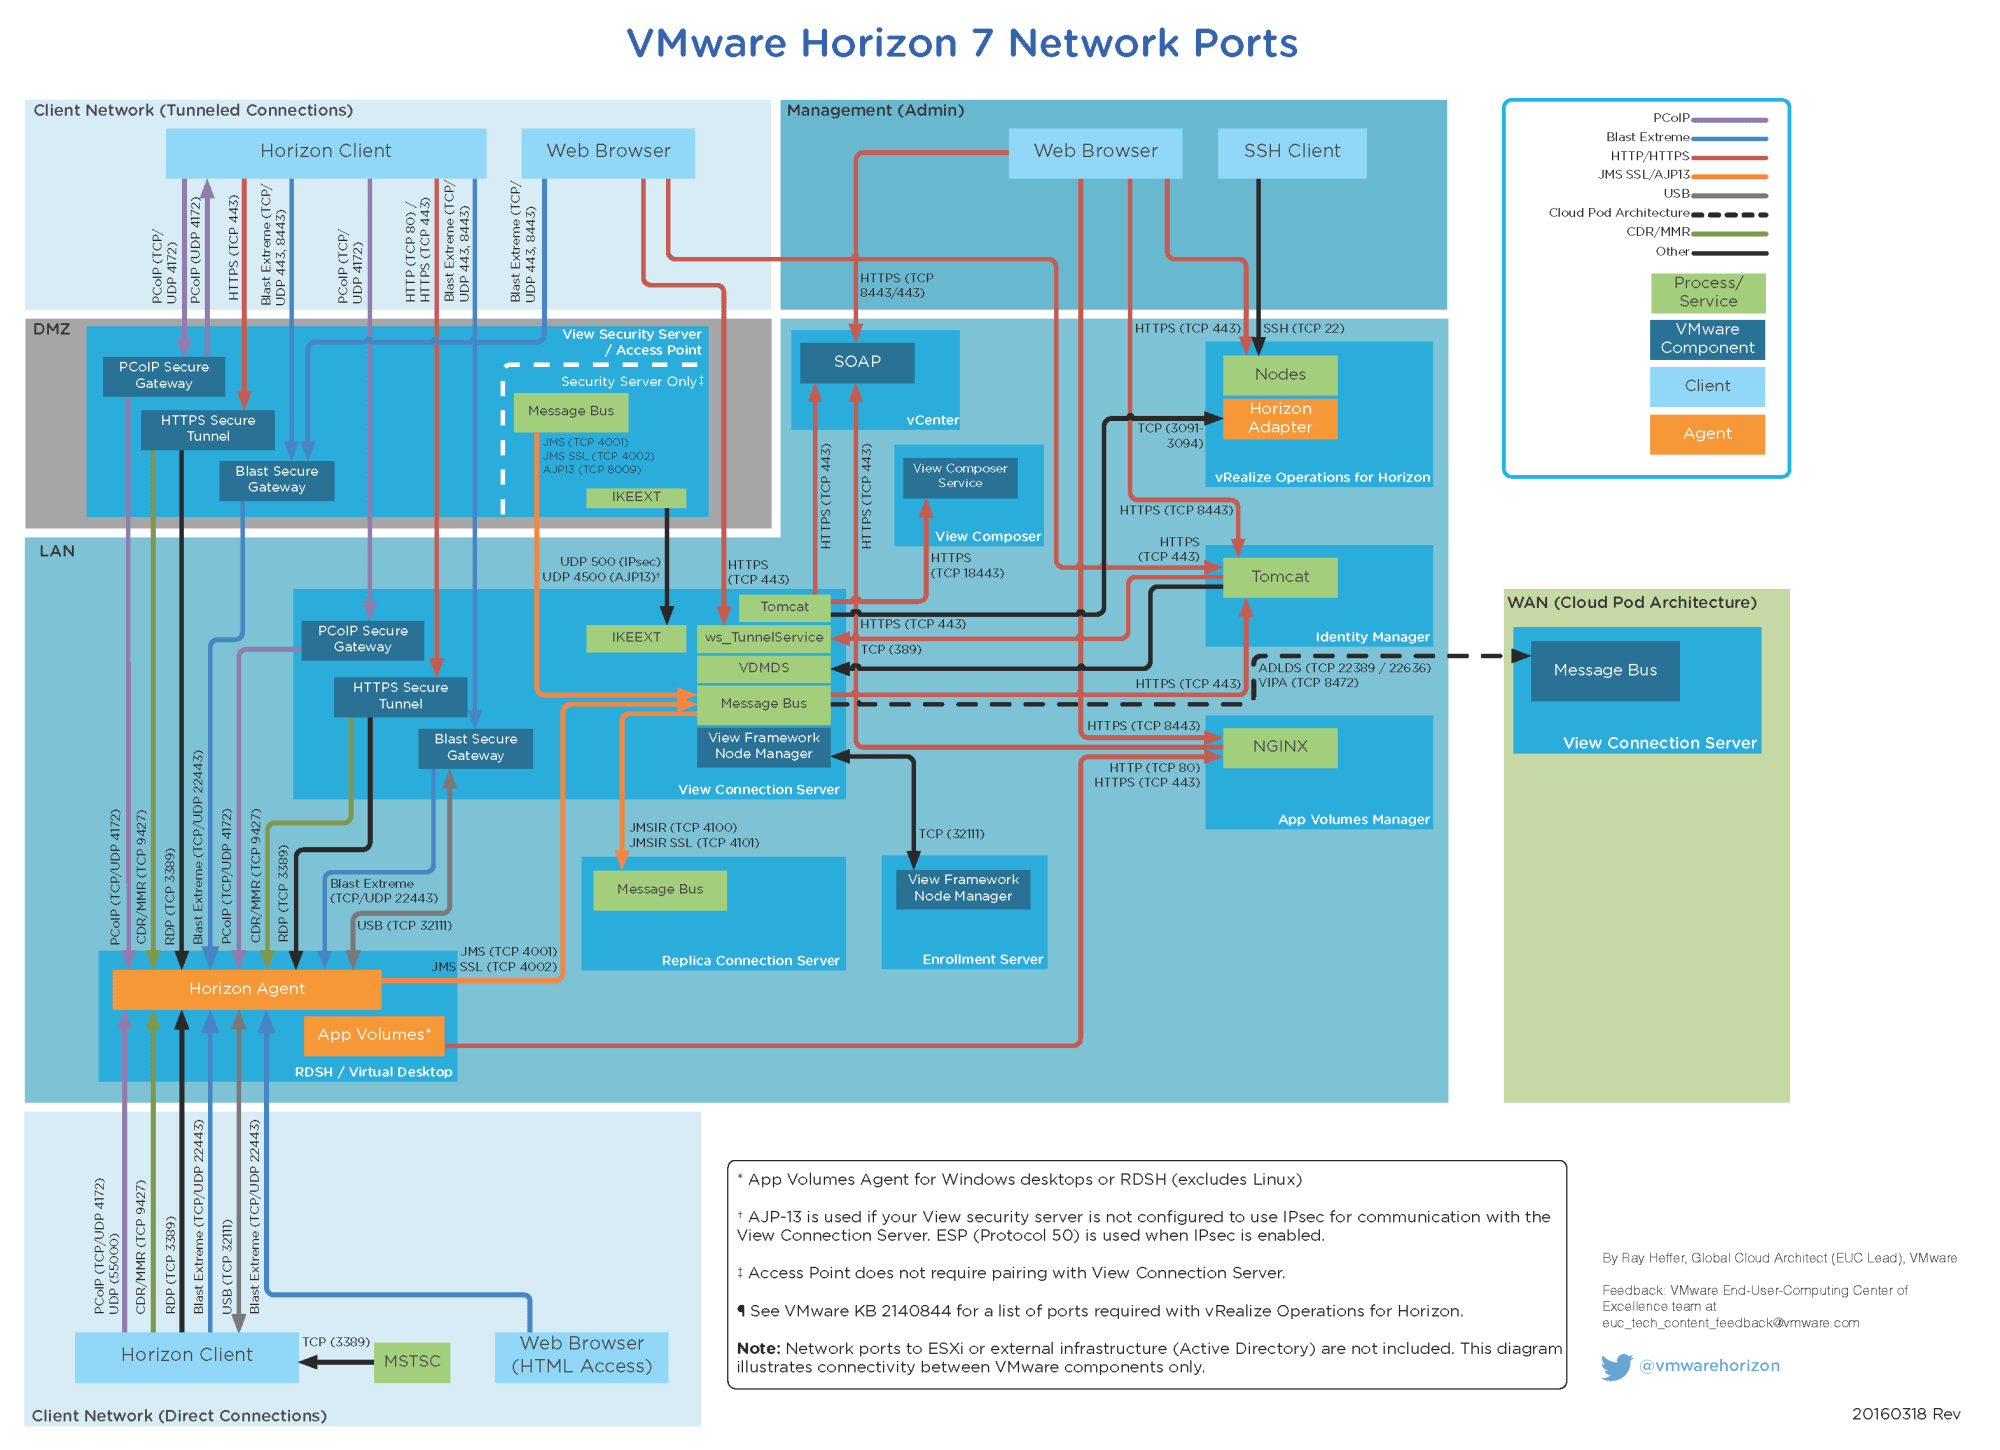 hight resolution of network ports diagram updated for horizon 7 vmware end user network port table horizon 7 port diagram